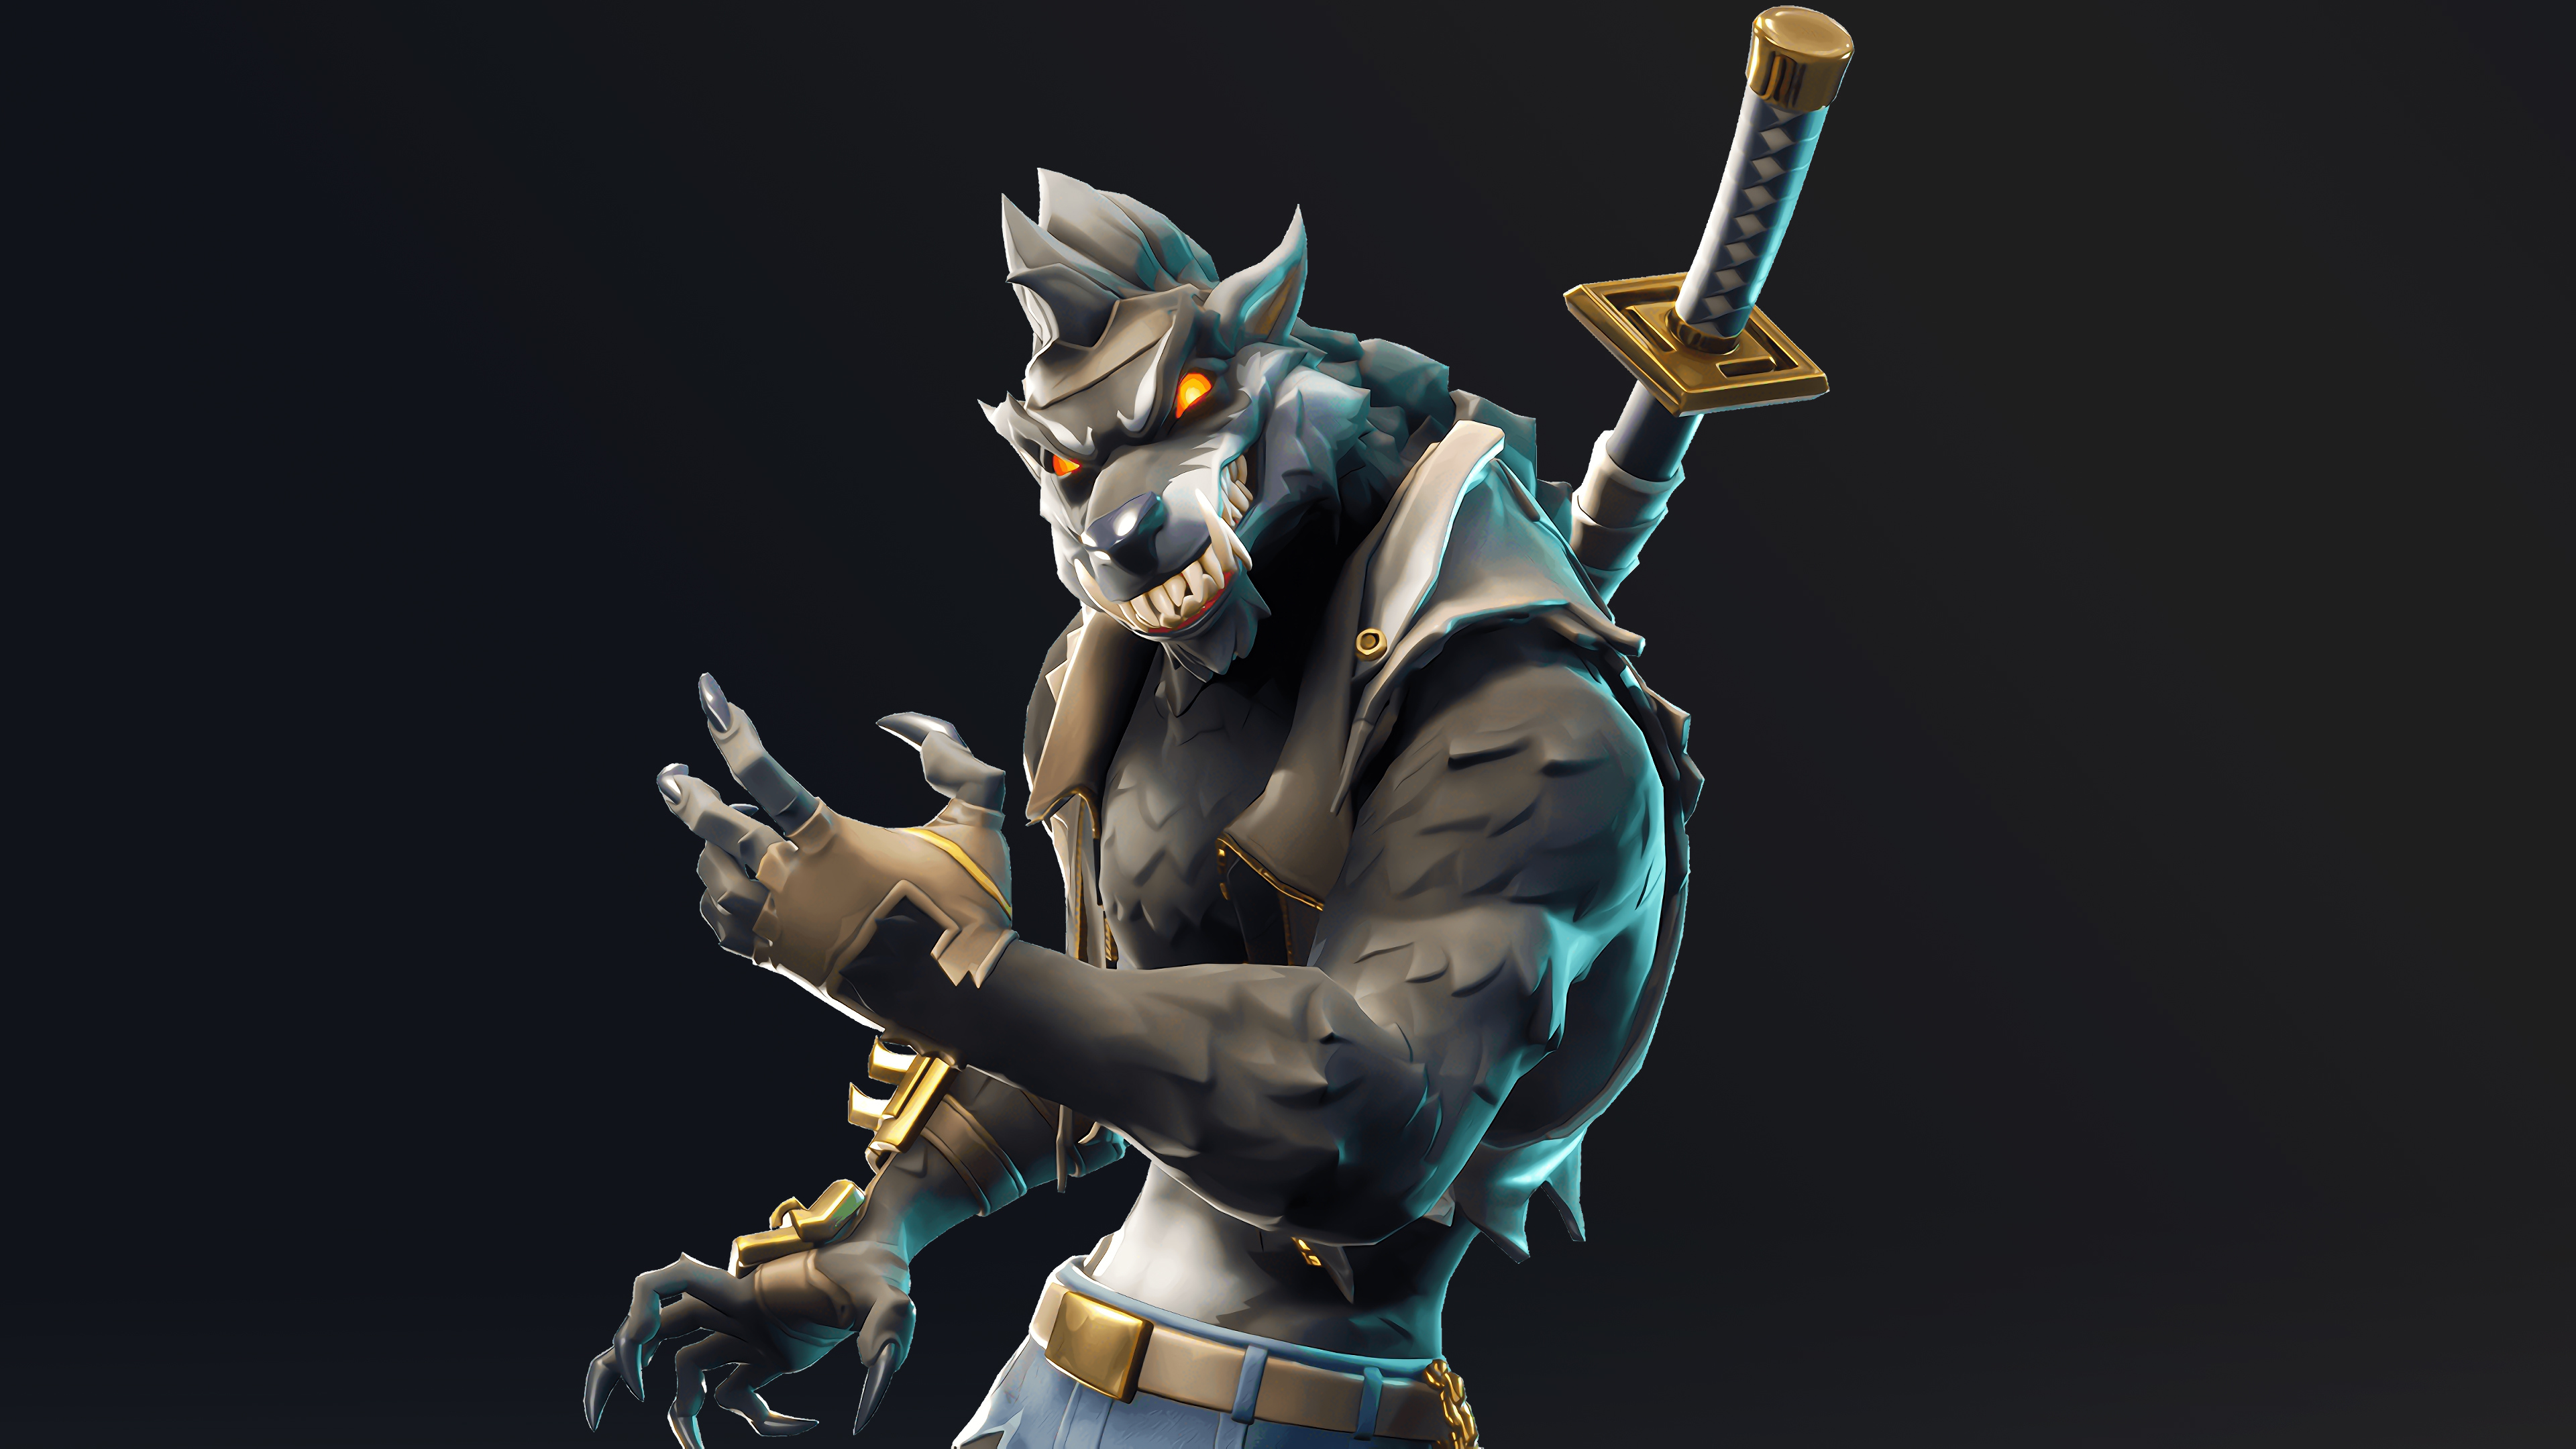 Dire Werewolf Fortnite Battle Royale Season 6 Skin 4286 3840x2160